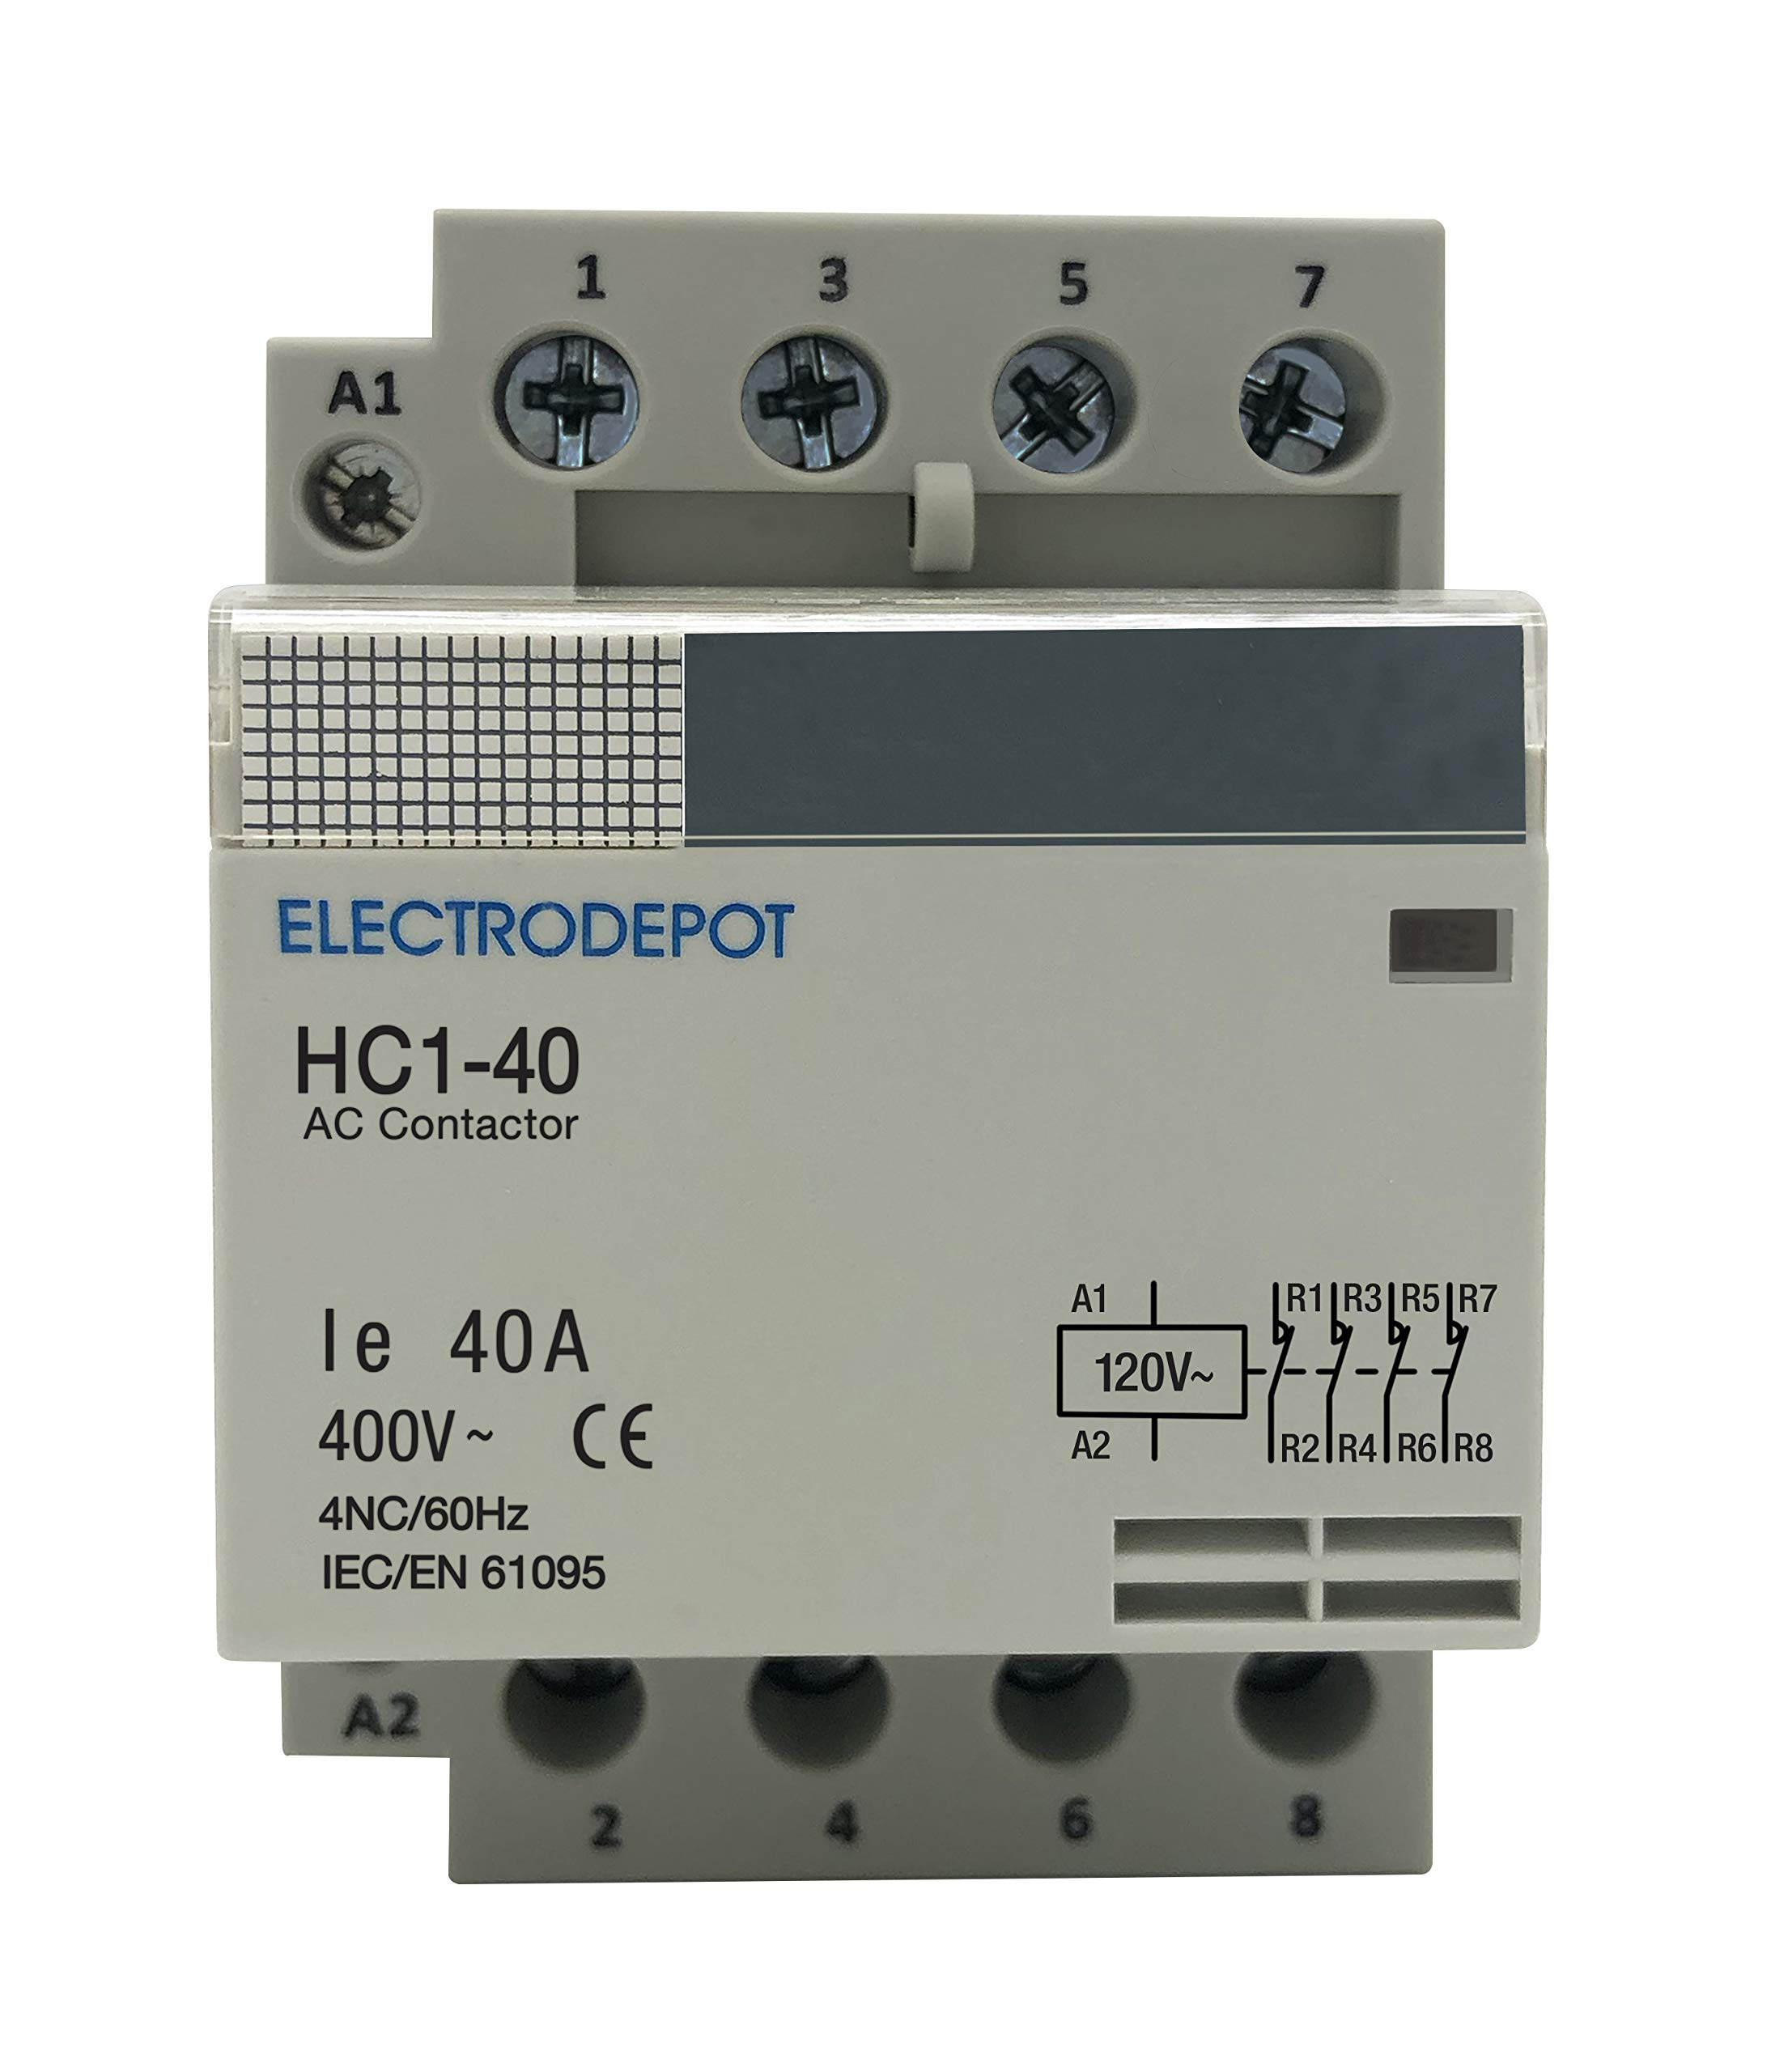 Electrodepot 40 Amp 4 Pole Normally Closed IEC 400V Contactor (Silent Operation) – 110/120VAC Coil, Inductive 20A, Resistive 40A with Mounting Base for DIN Rail